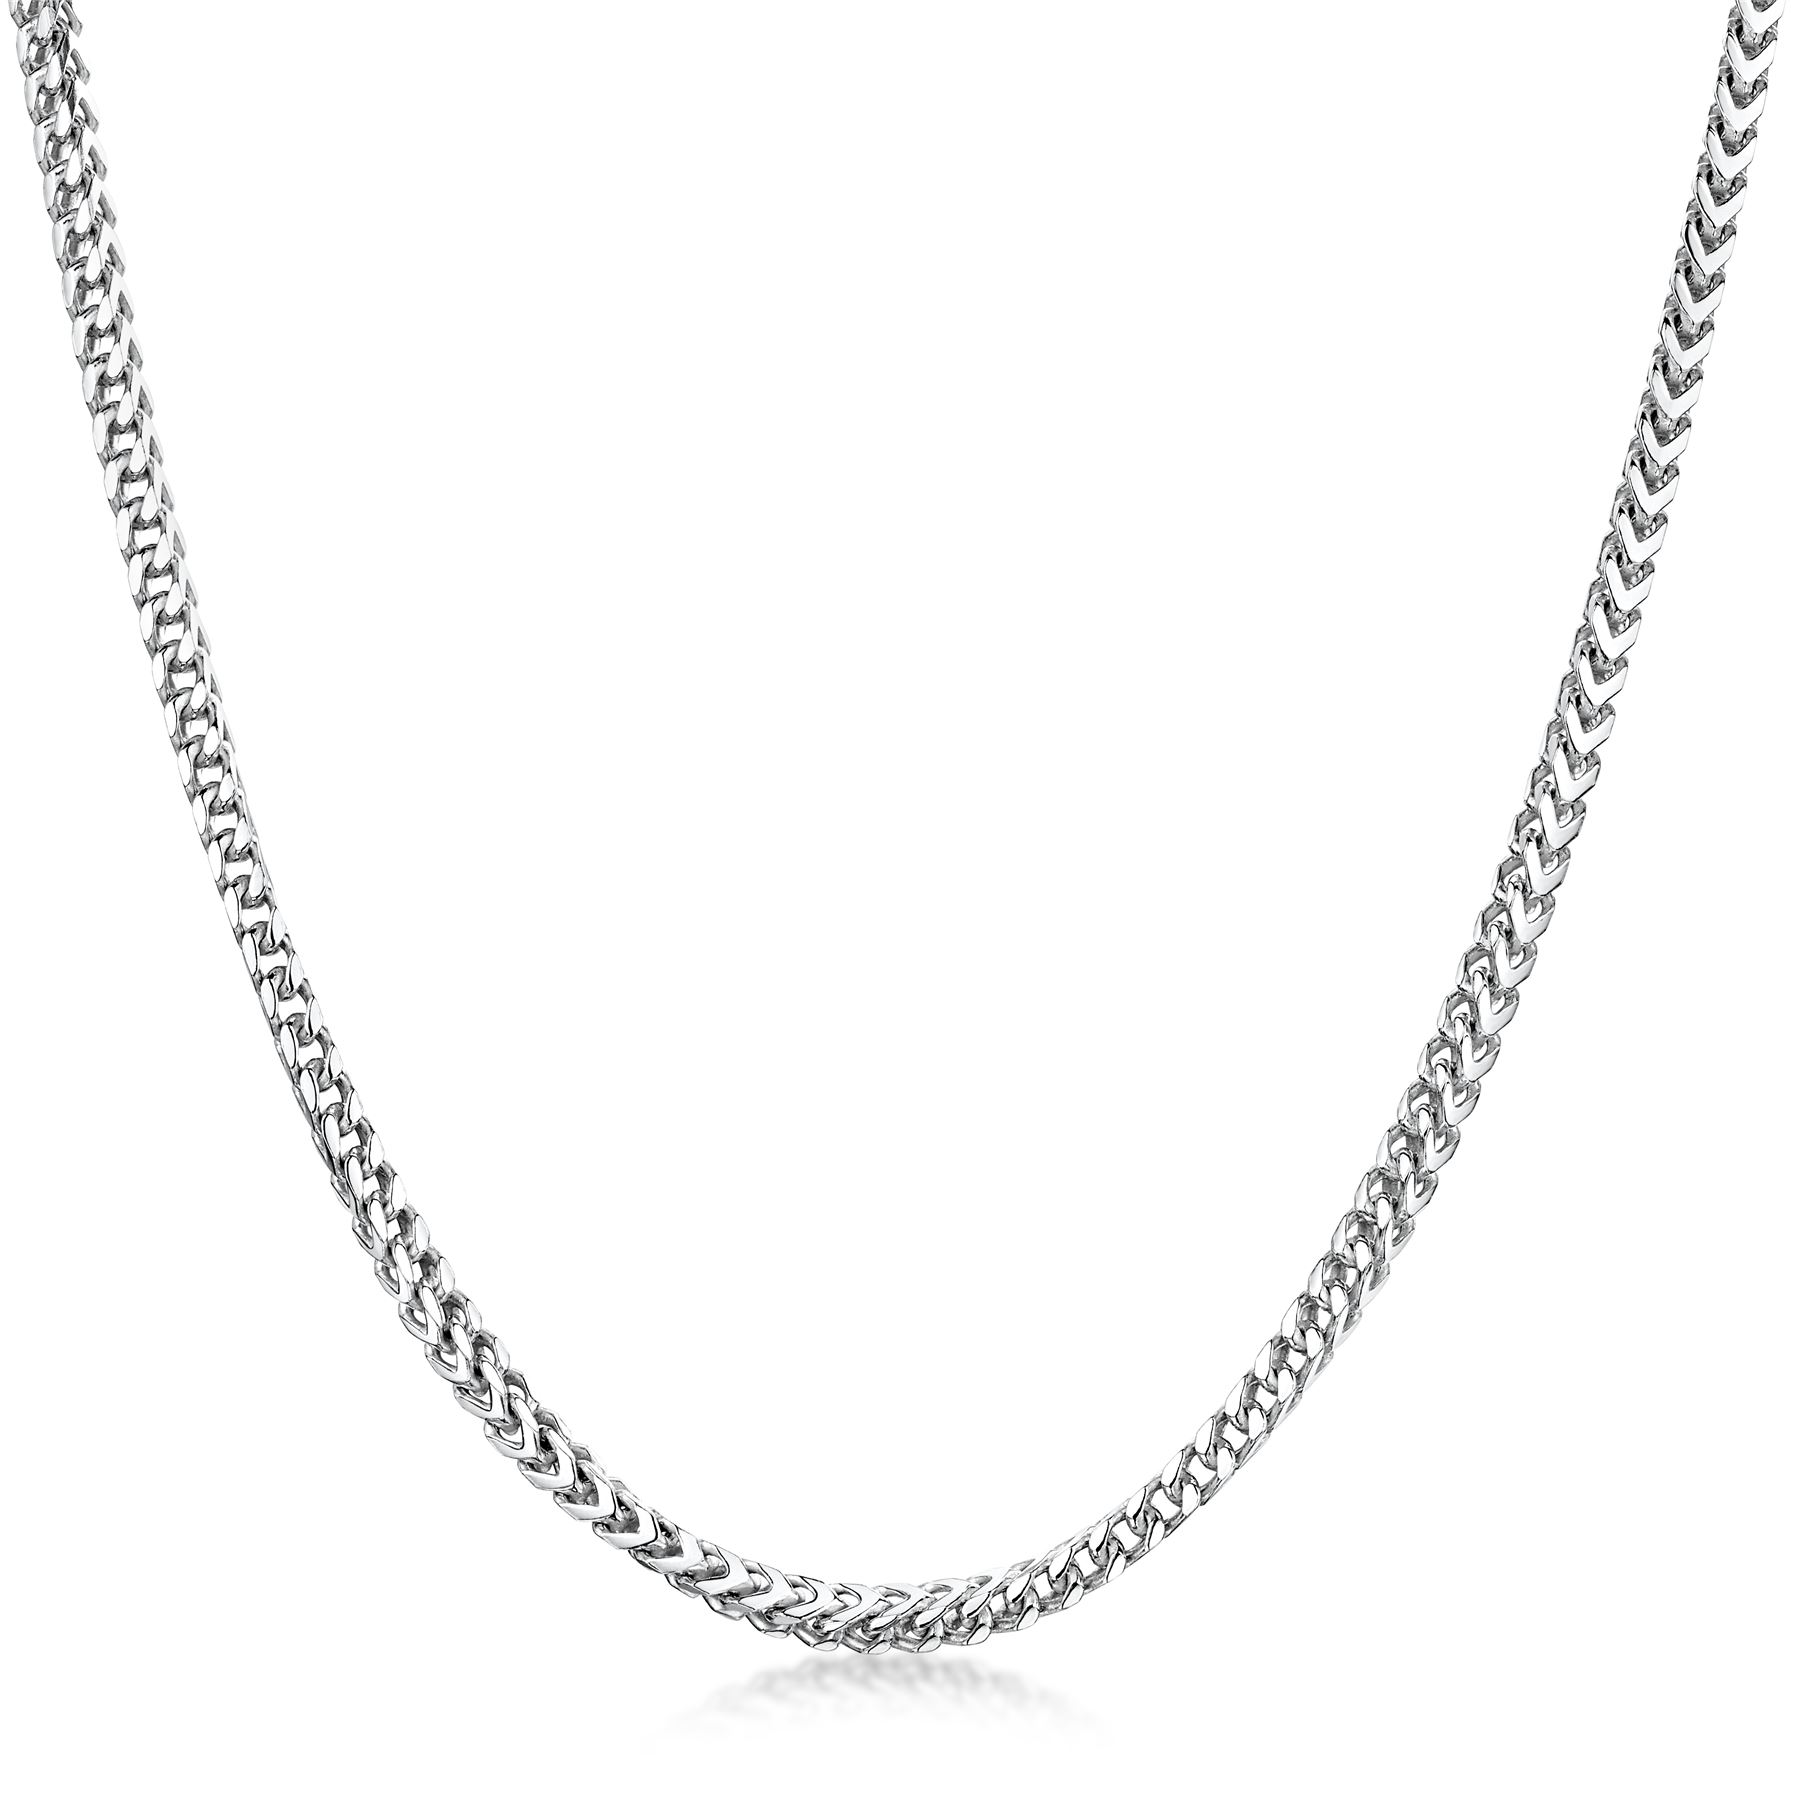 Amberta-925-Sterling-Silver-Link-Chain-Mens-Curb-Cuban-Necklace-ALL-SIZES-Italy thumbnail 3